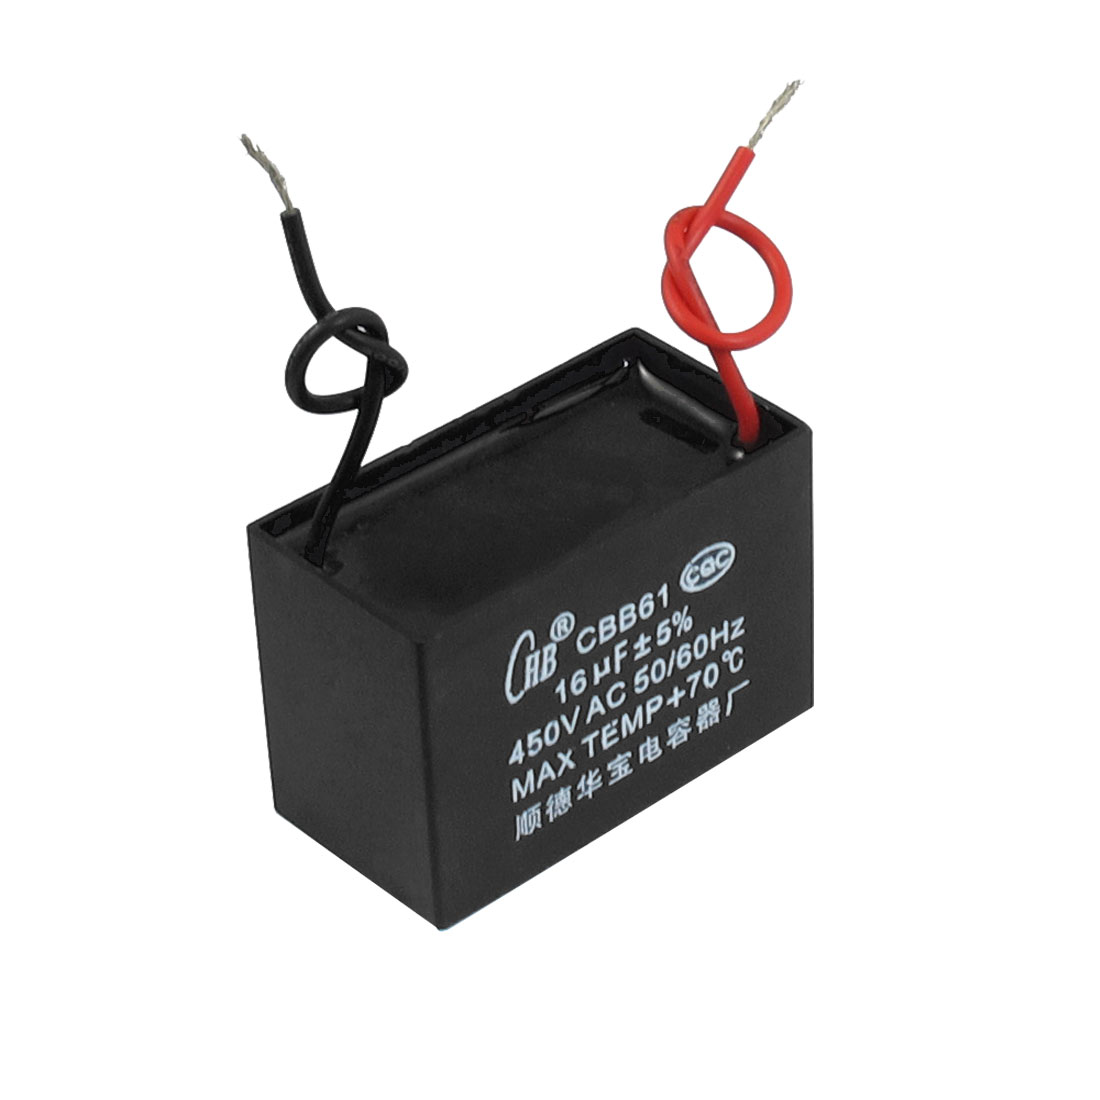 CBB61 16uF AC 450V Rectangle Non Polar Motor Run Capacitor